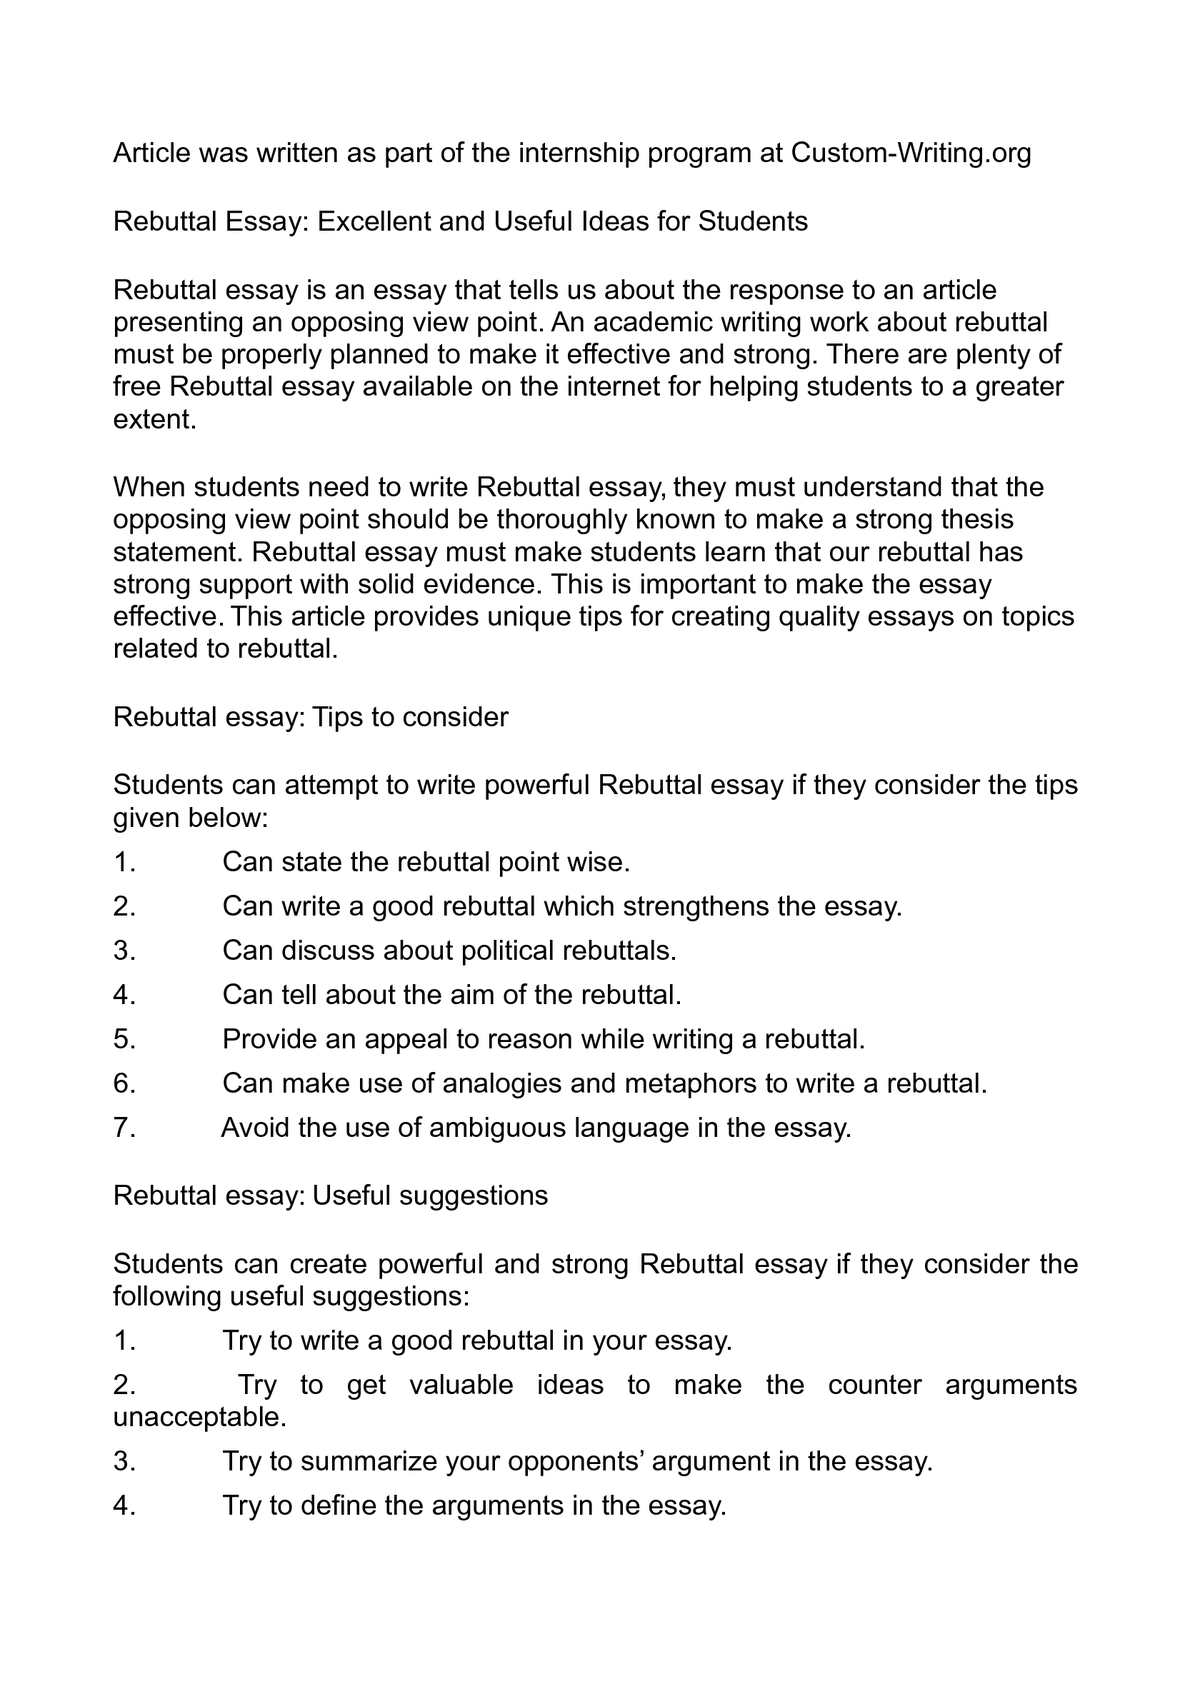 rebuttal essay excellent and useful ideas for students